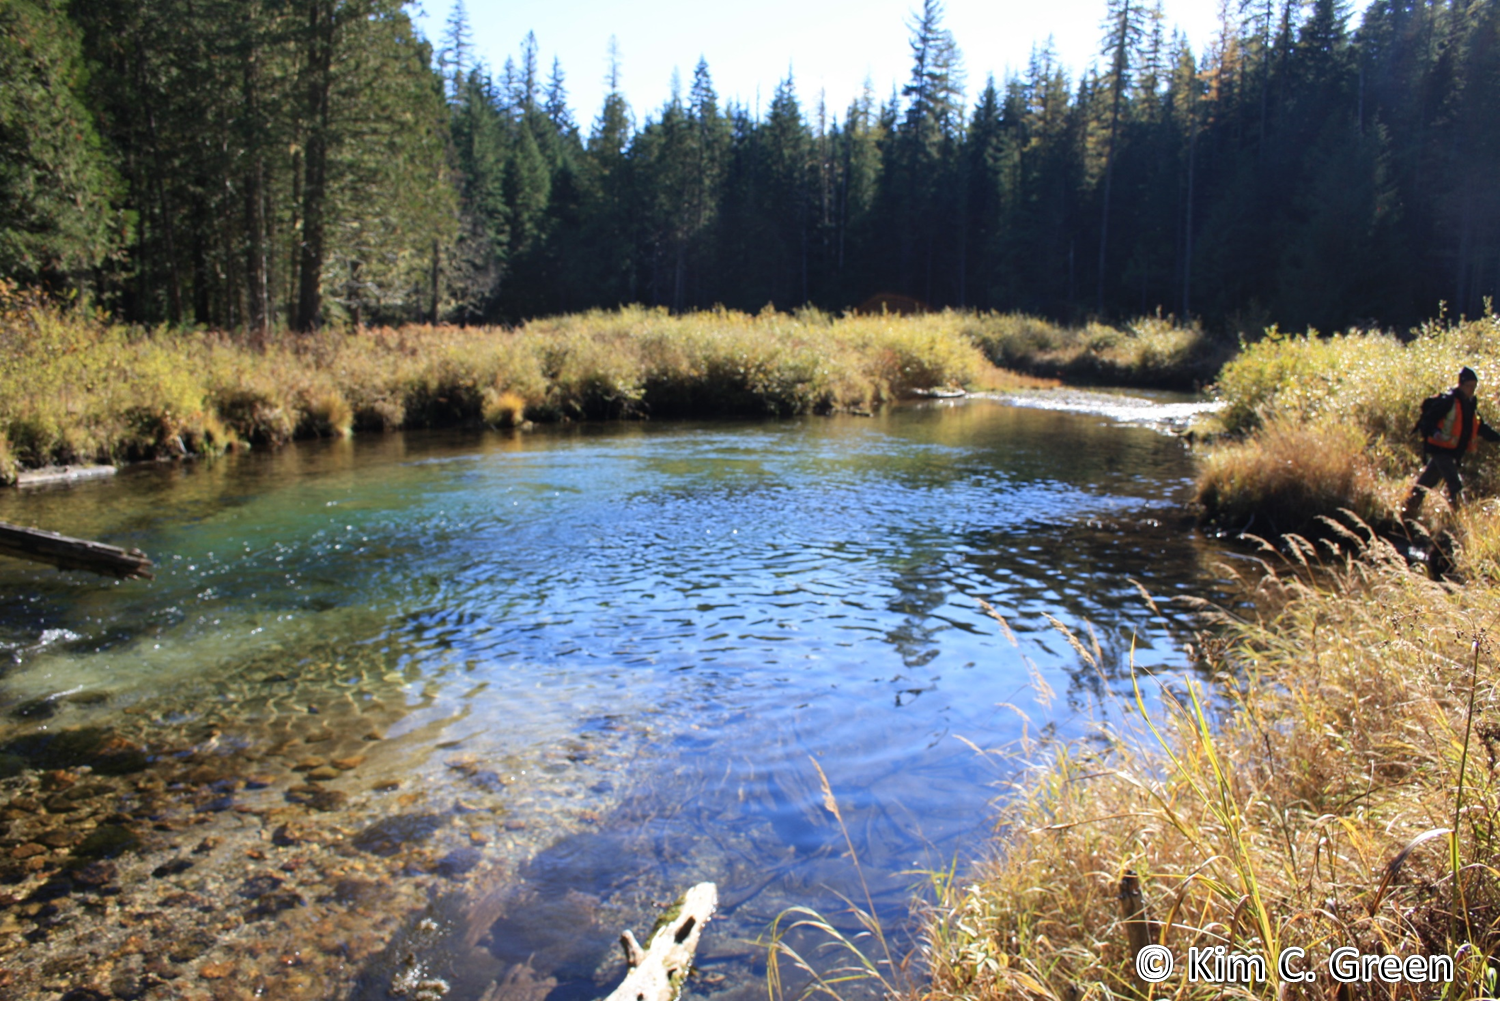 Duhamel Creek – one of my favorite local watersheds